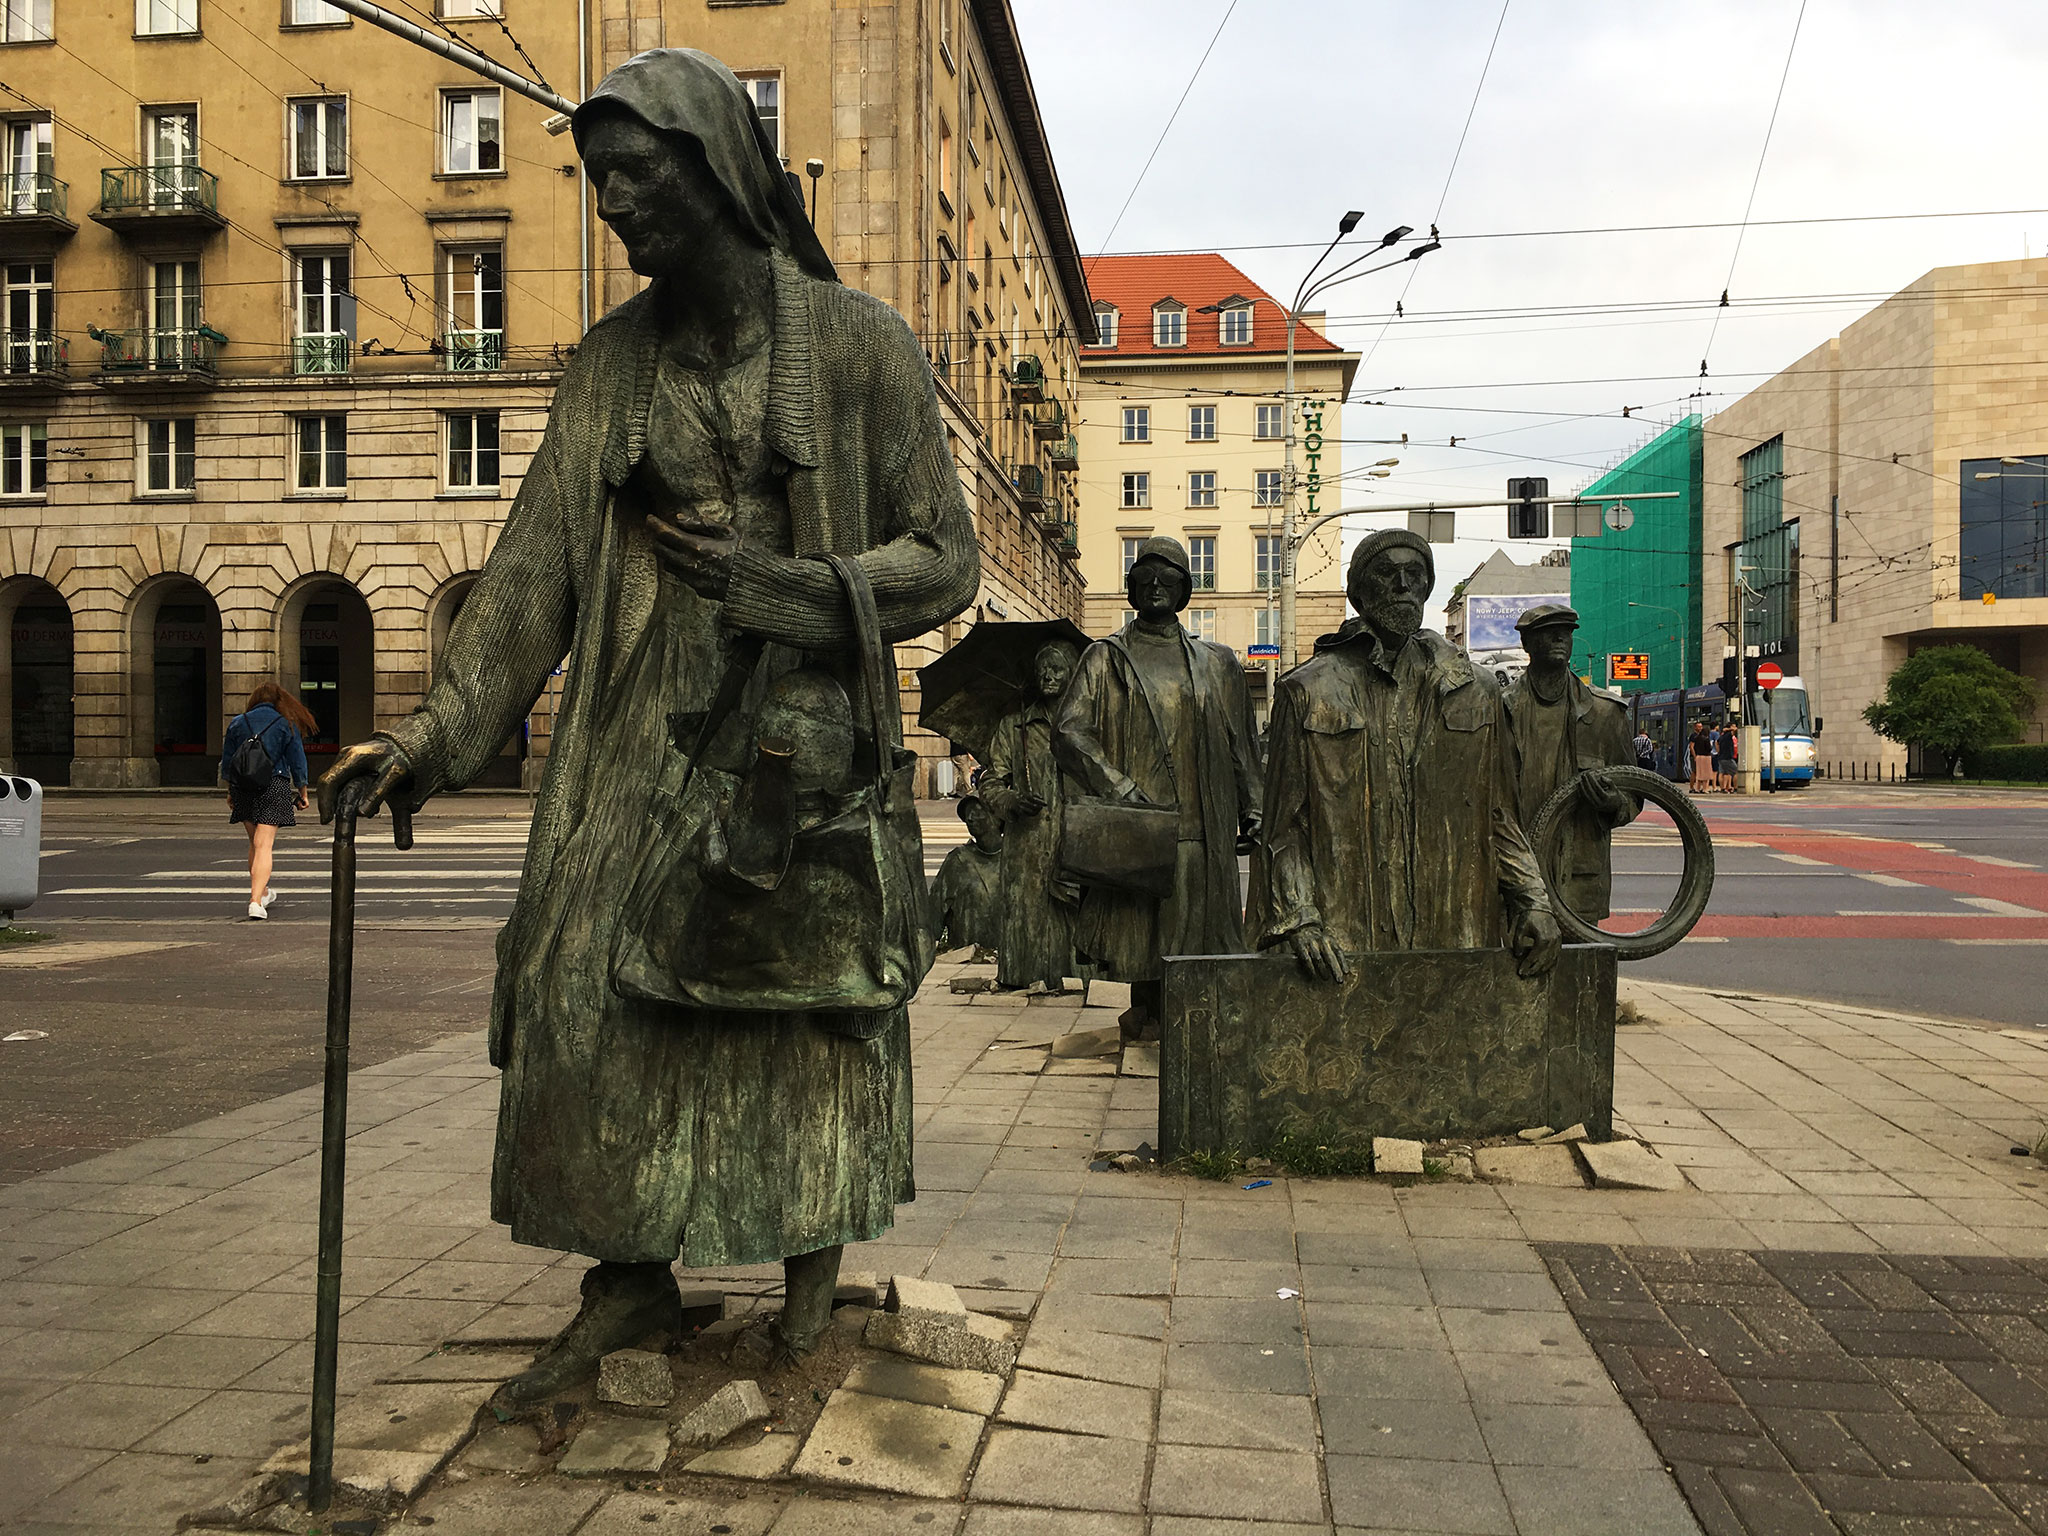 Wroclaw - sculptures picture